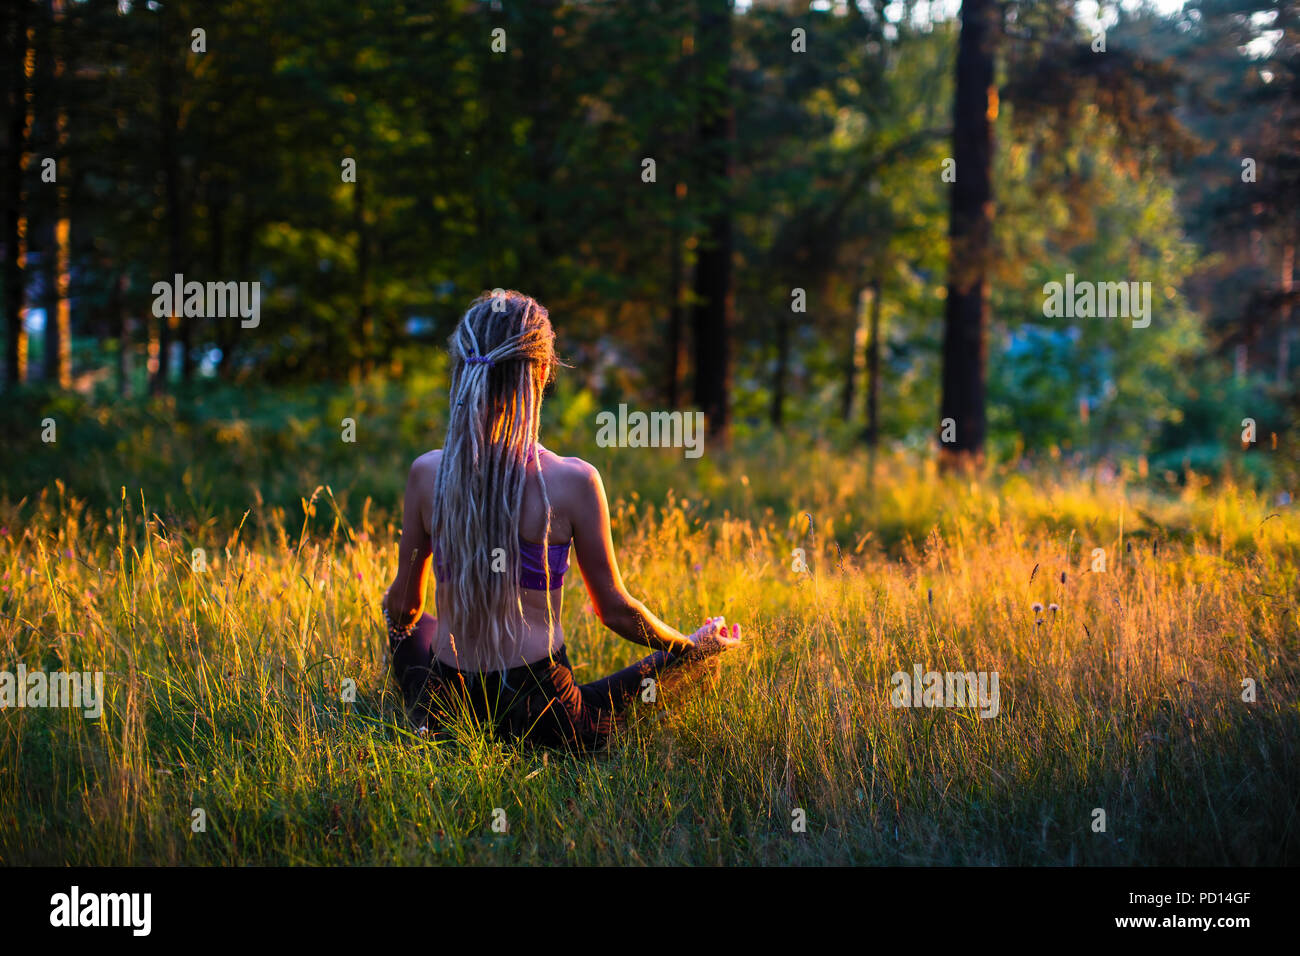 Yoga Woman Silhouette In Lotus Pose Sitting On A Picturesque Glade In A Green Forest Stock Photo Alamy